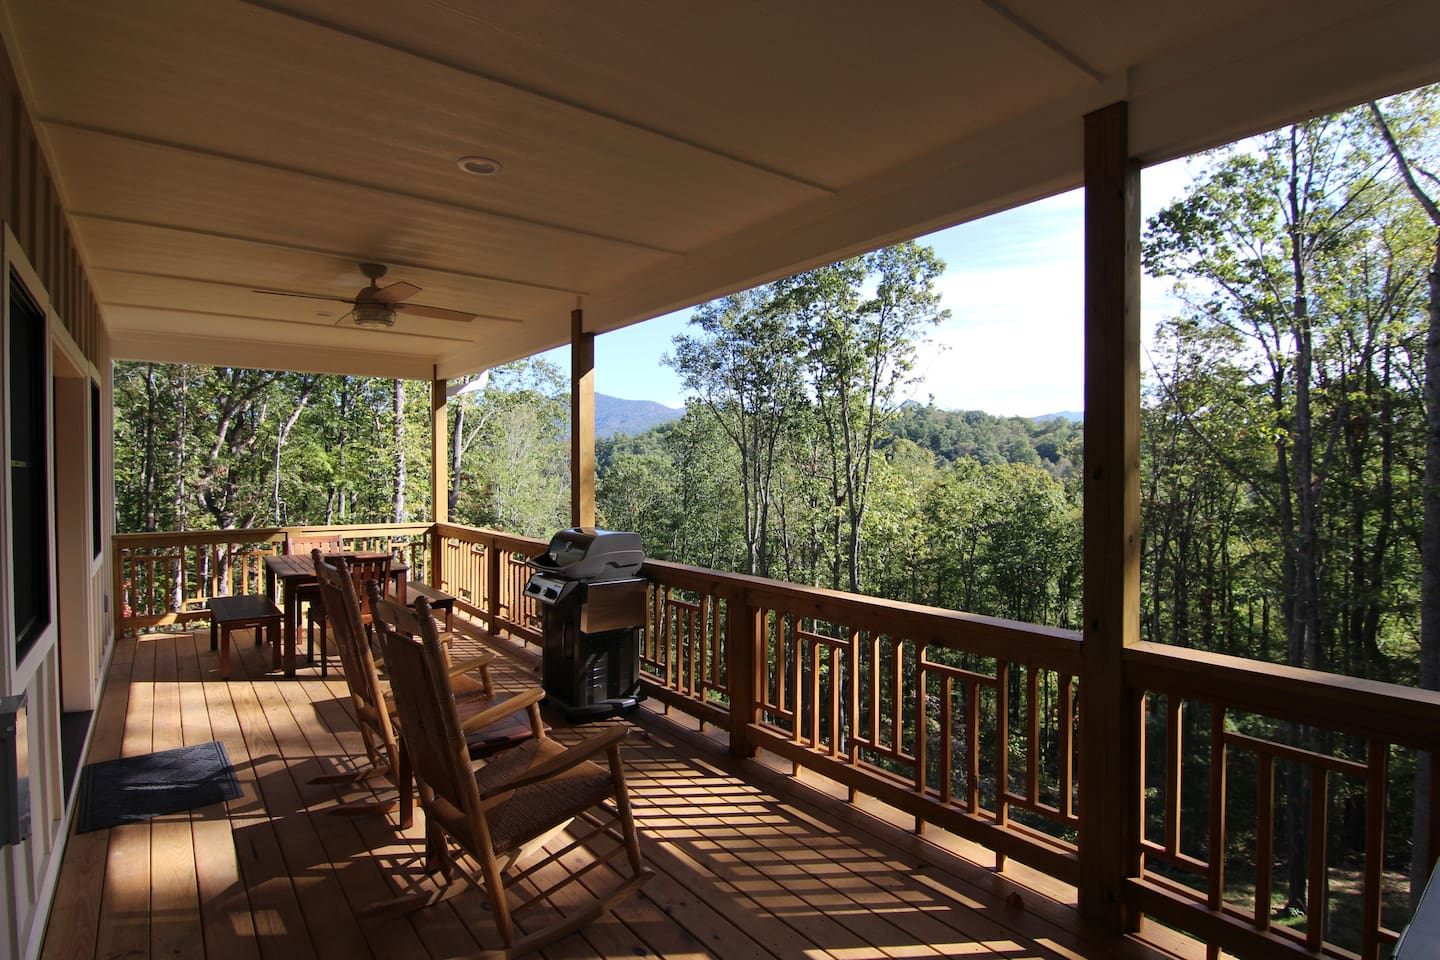 The back deck off the main level with dining table, grill, two rocking chairs and a hot tub.